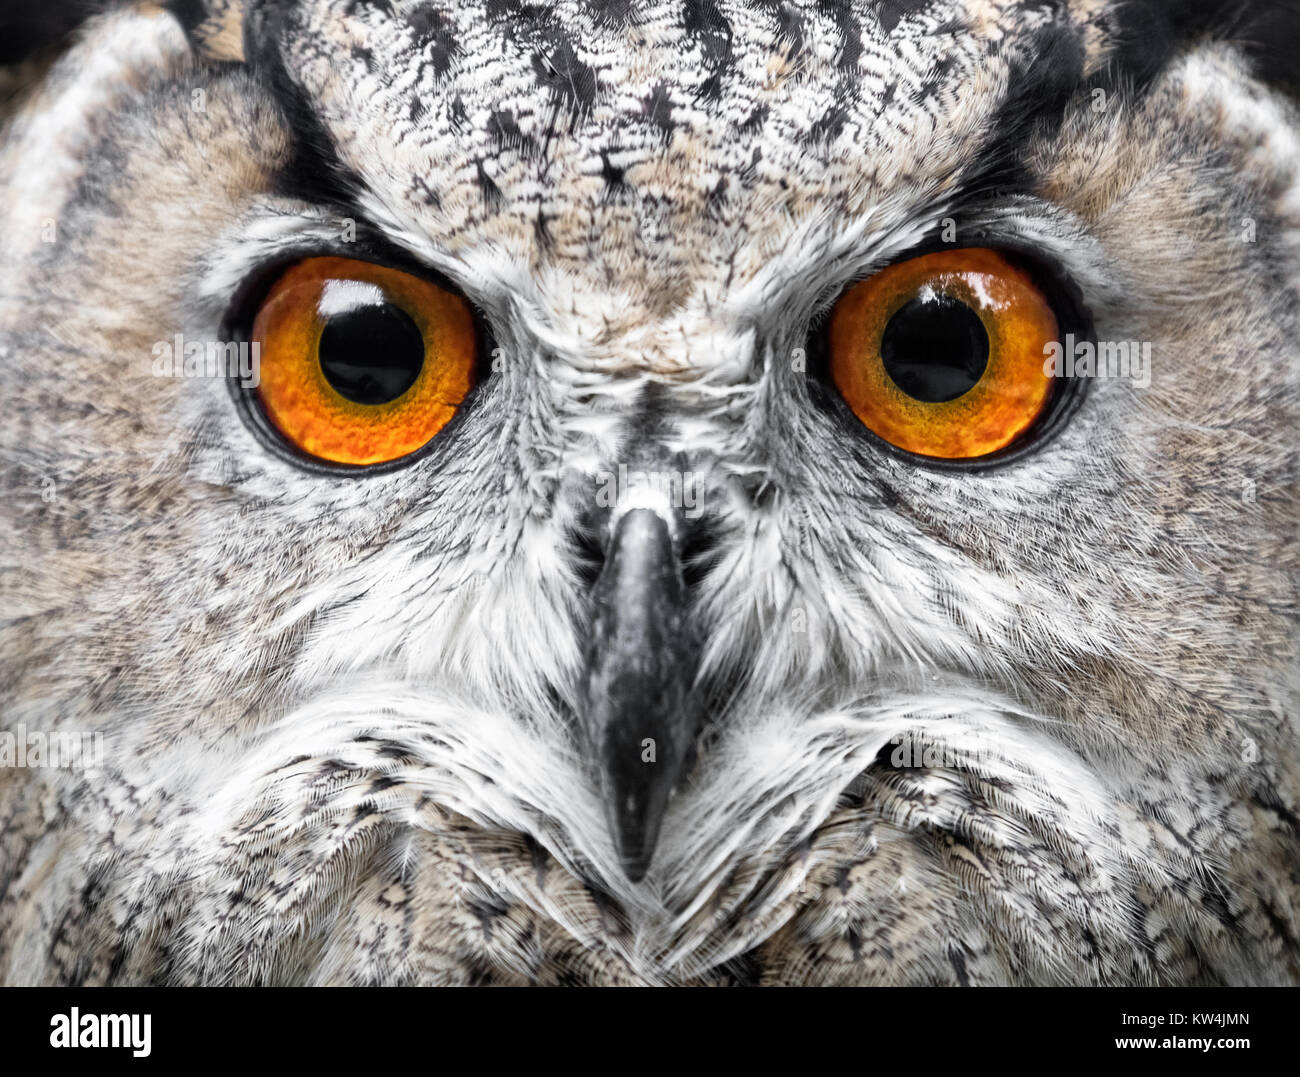 Owls Portrait. owl eyes - Stock Image